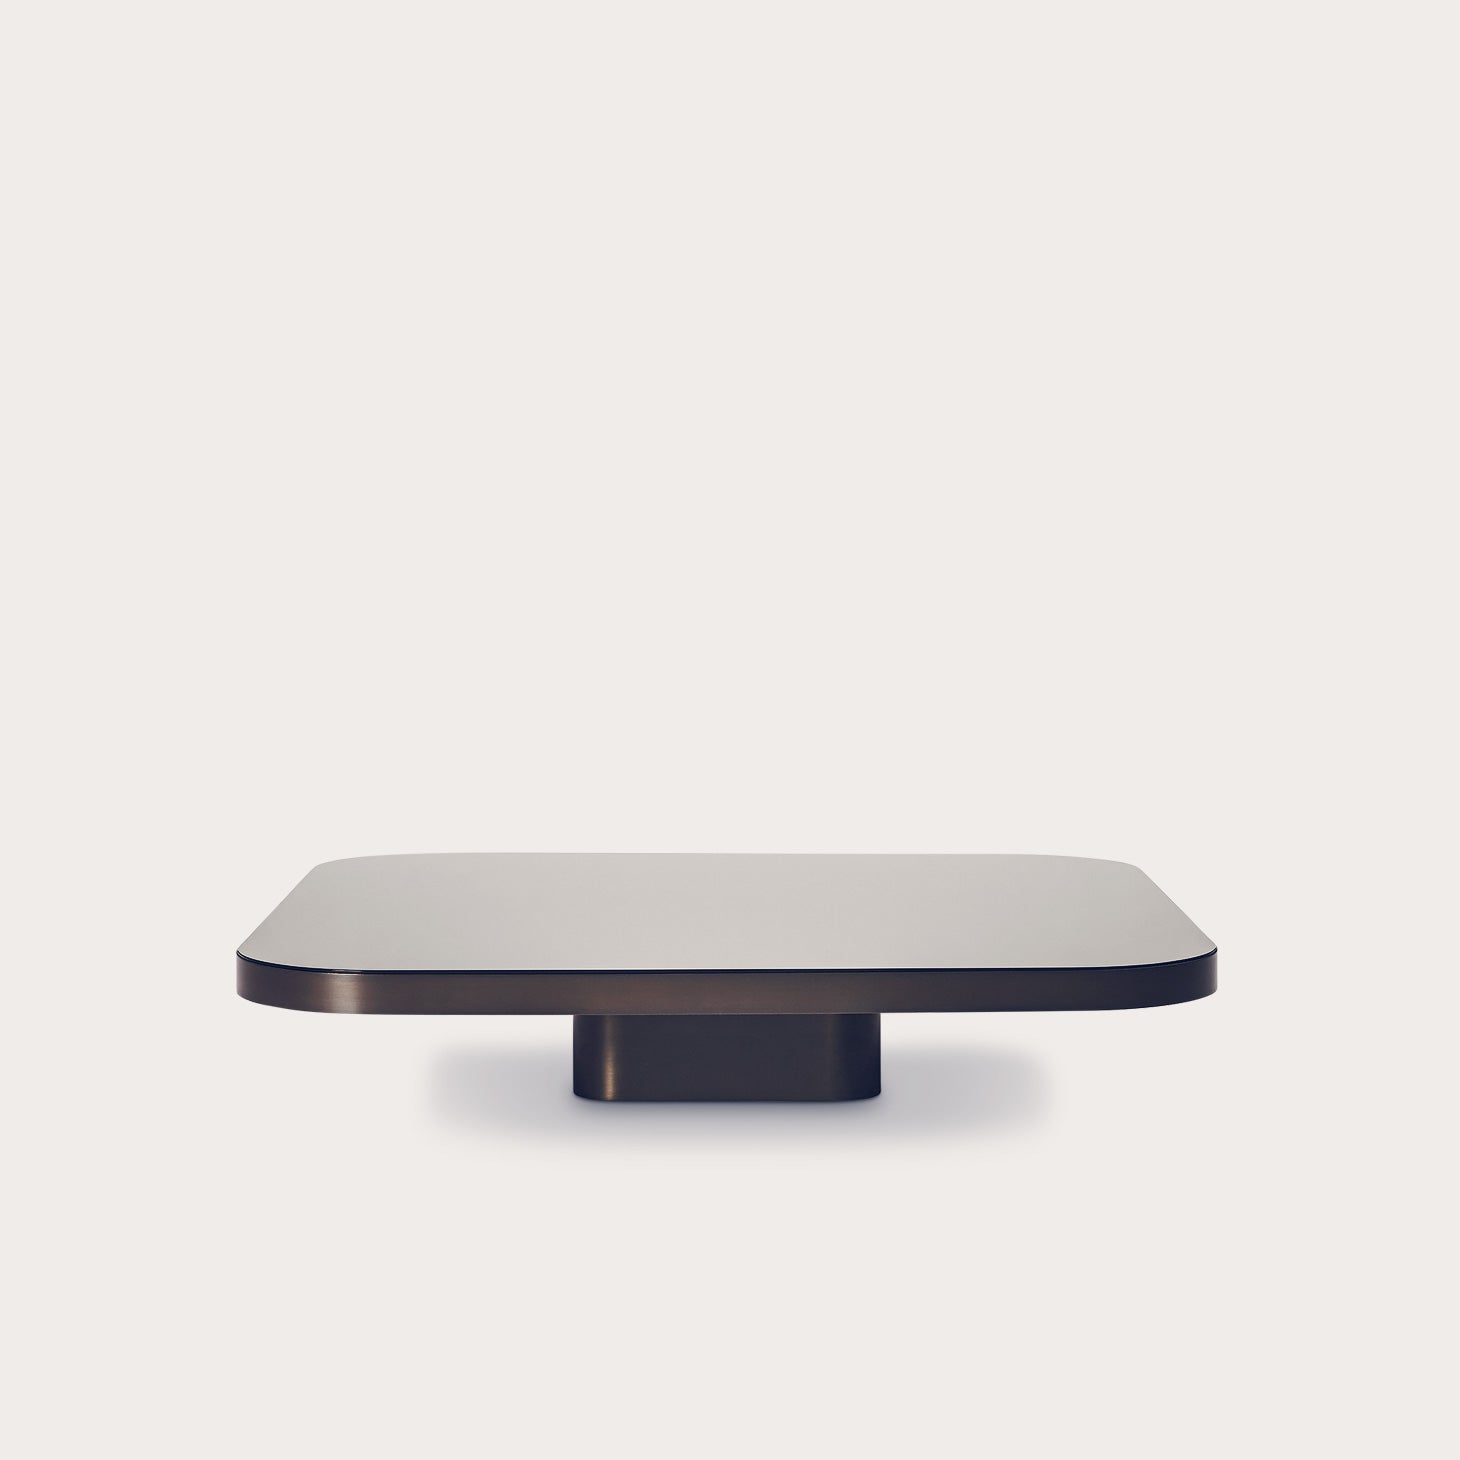 Bow Coffee Table No.4 Tables Guilherme Torres Designer Furniture Sku: 001-230-10241